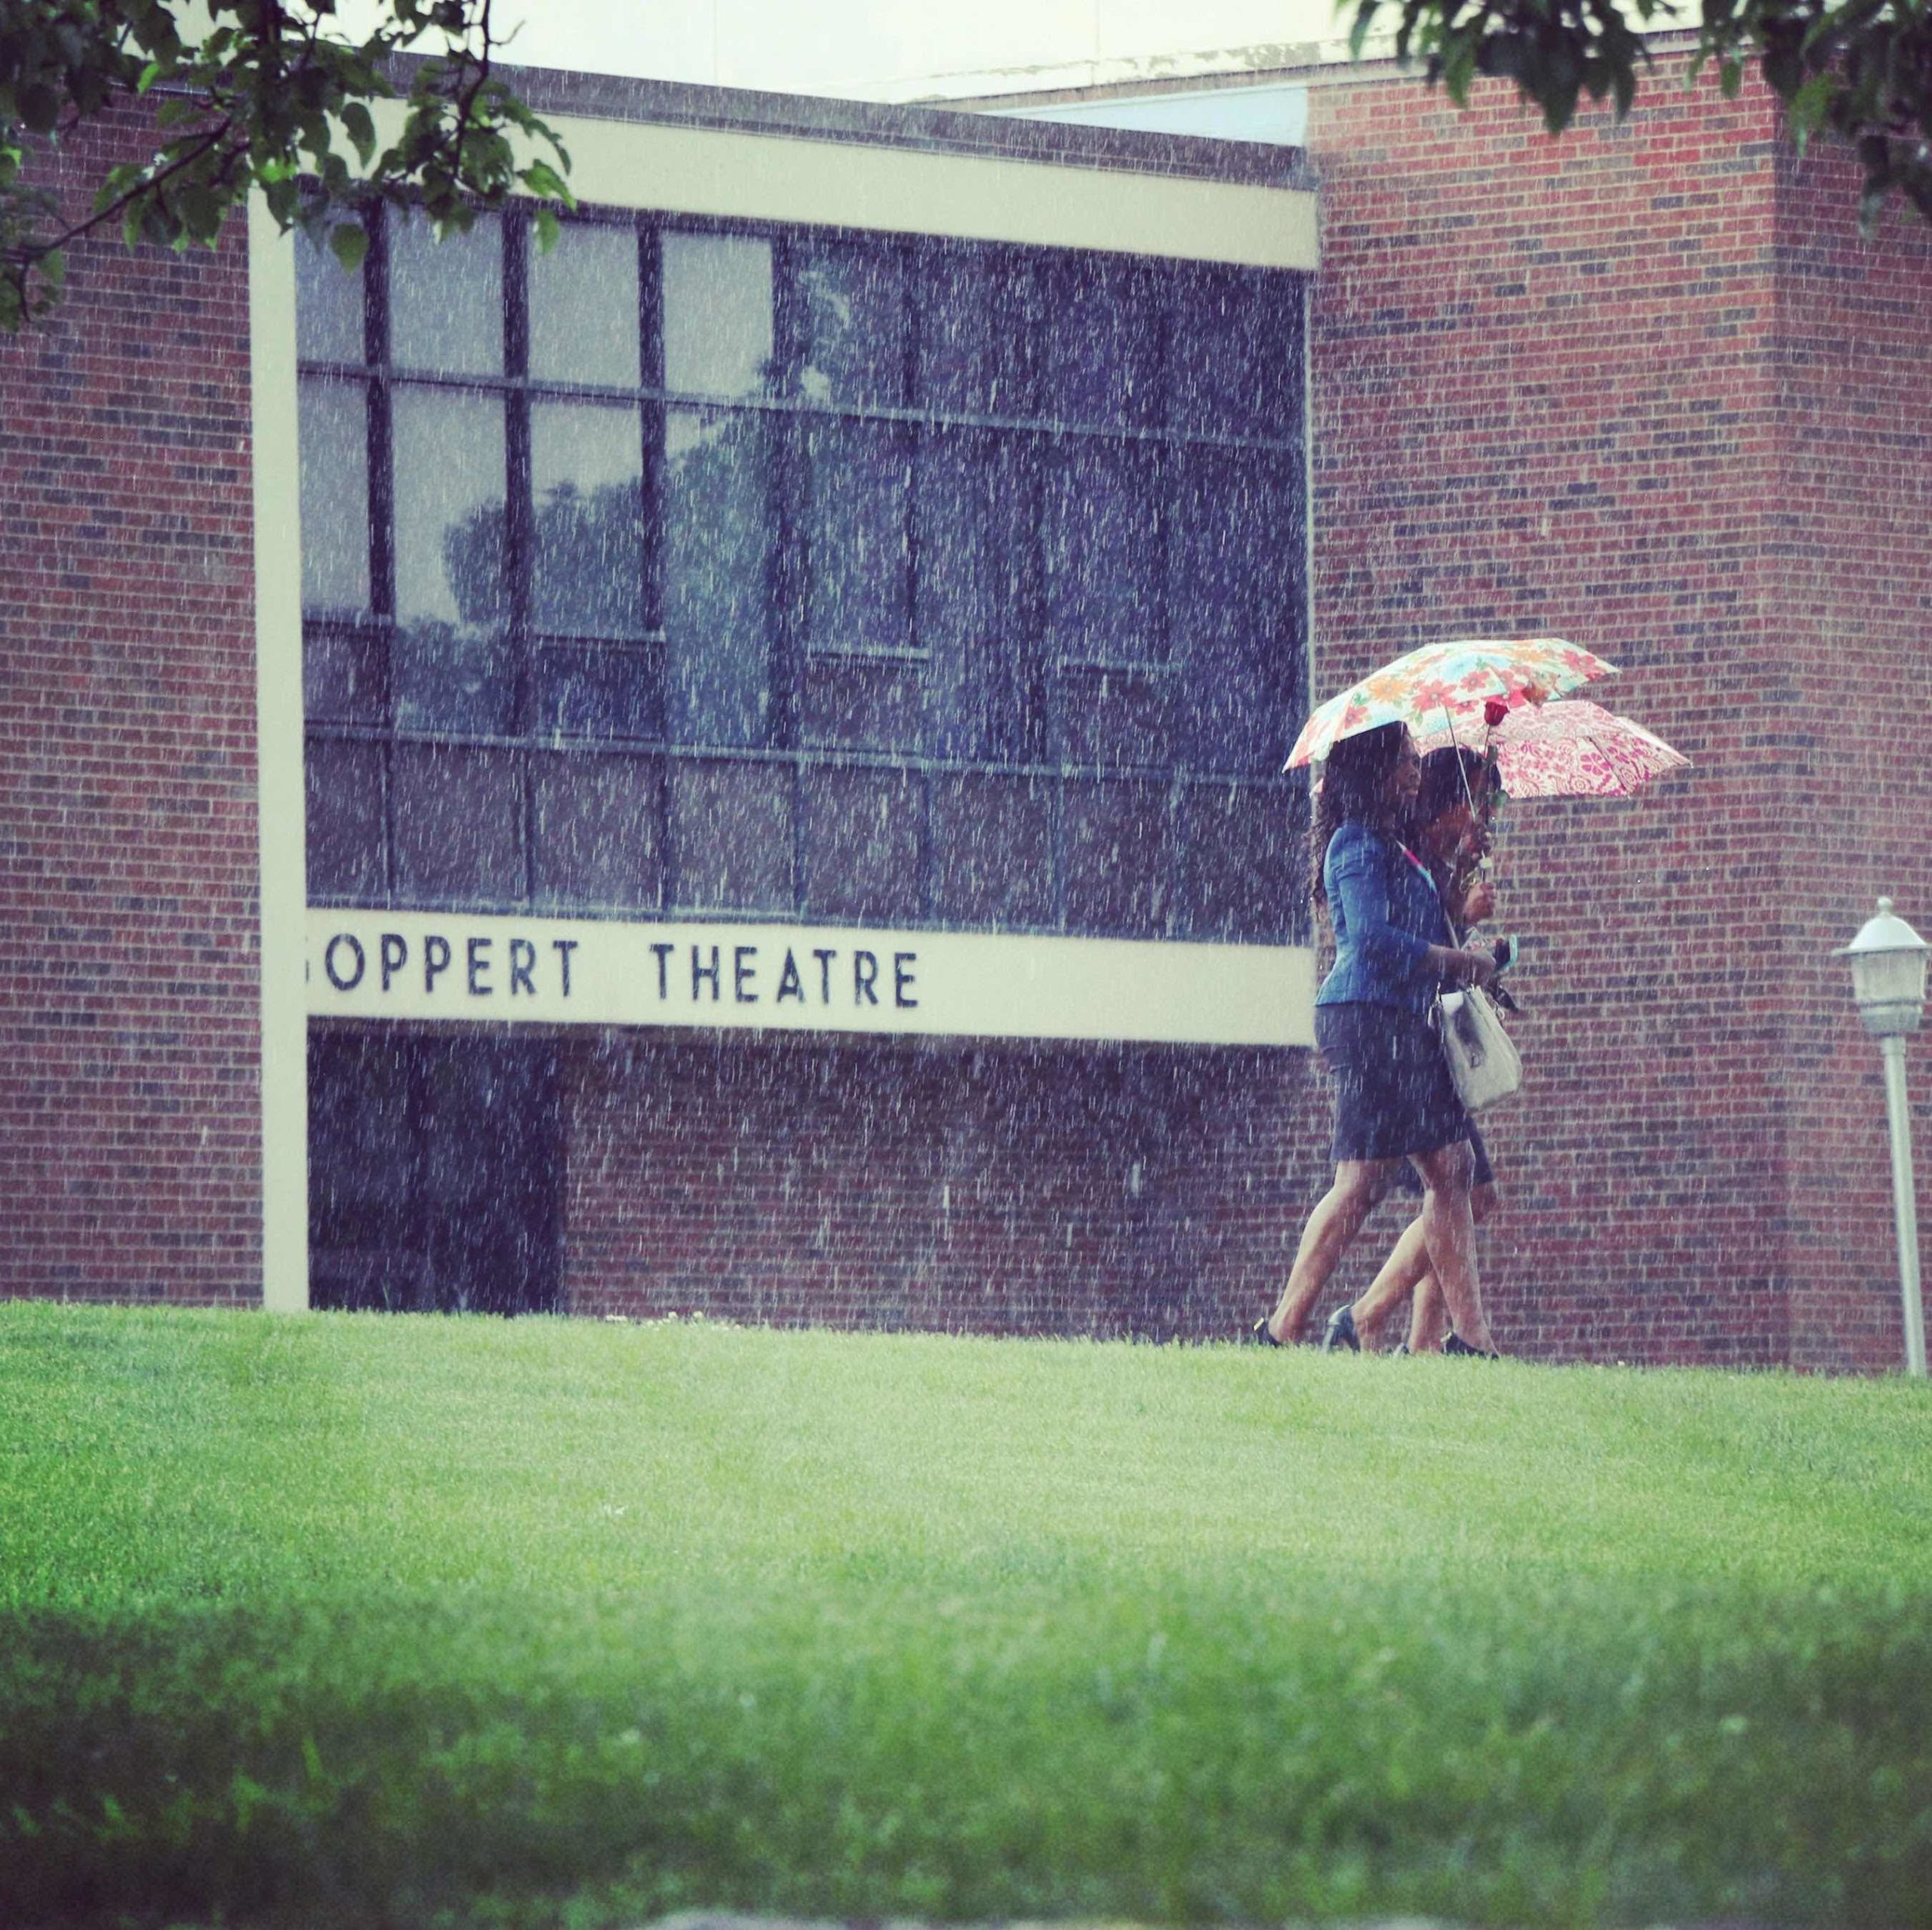 Two students holding umbrellas and walking in the rain past the Goppert Theatre entrance.